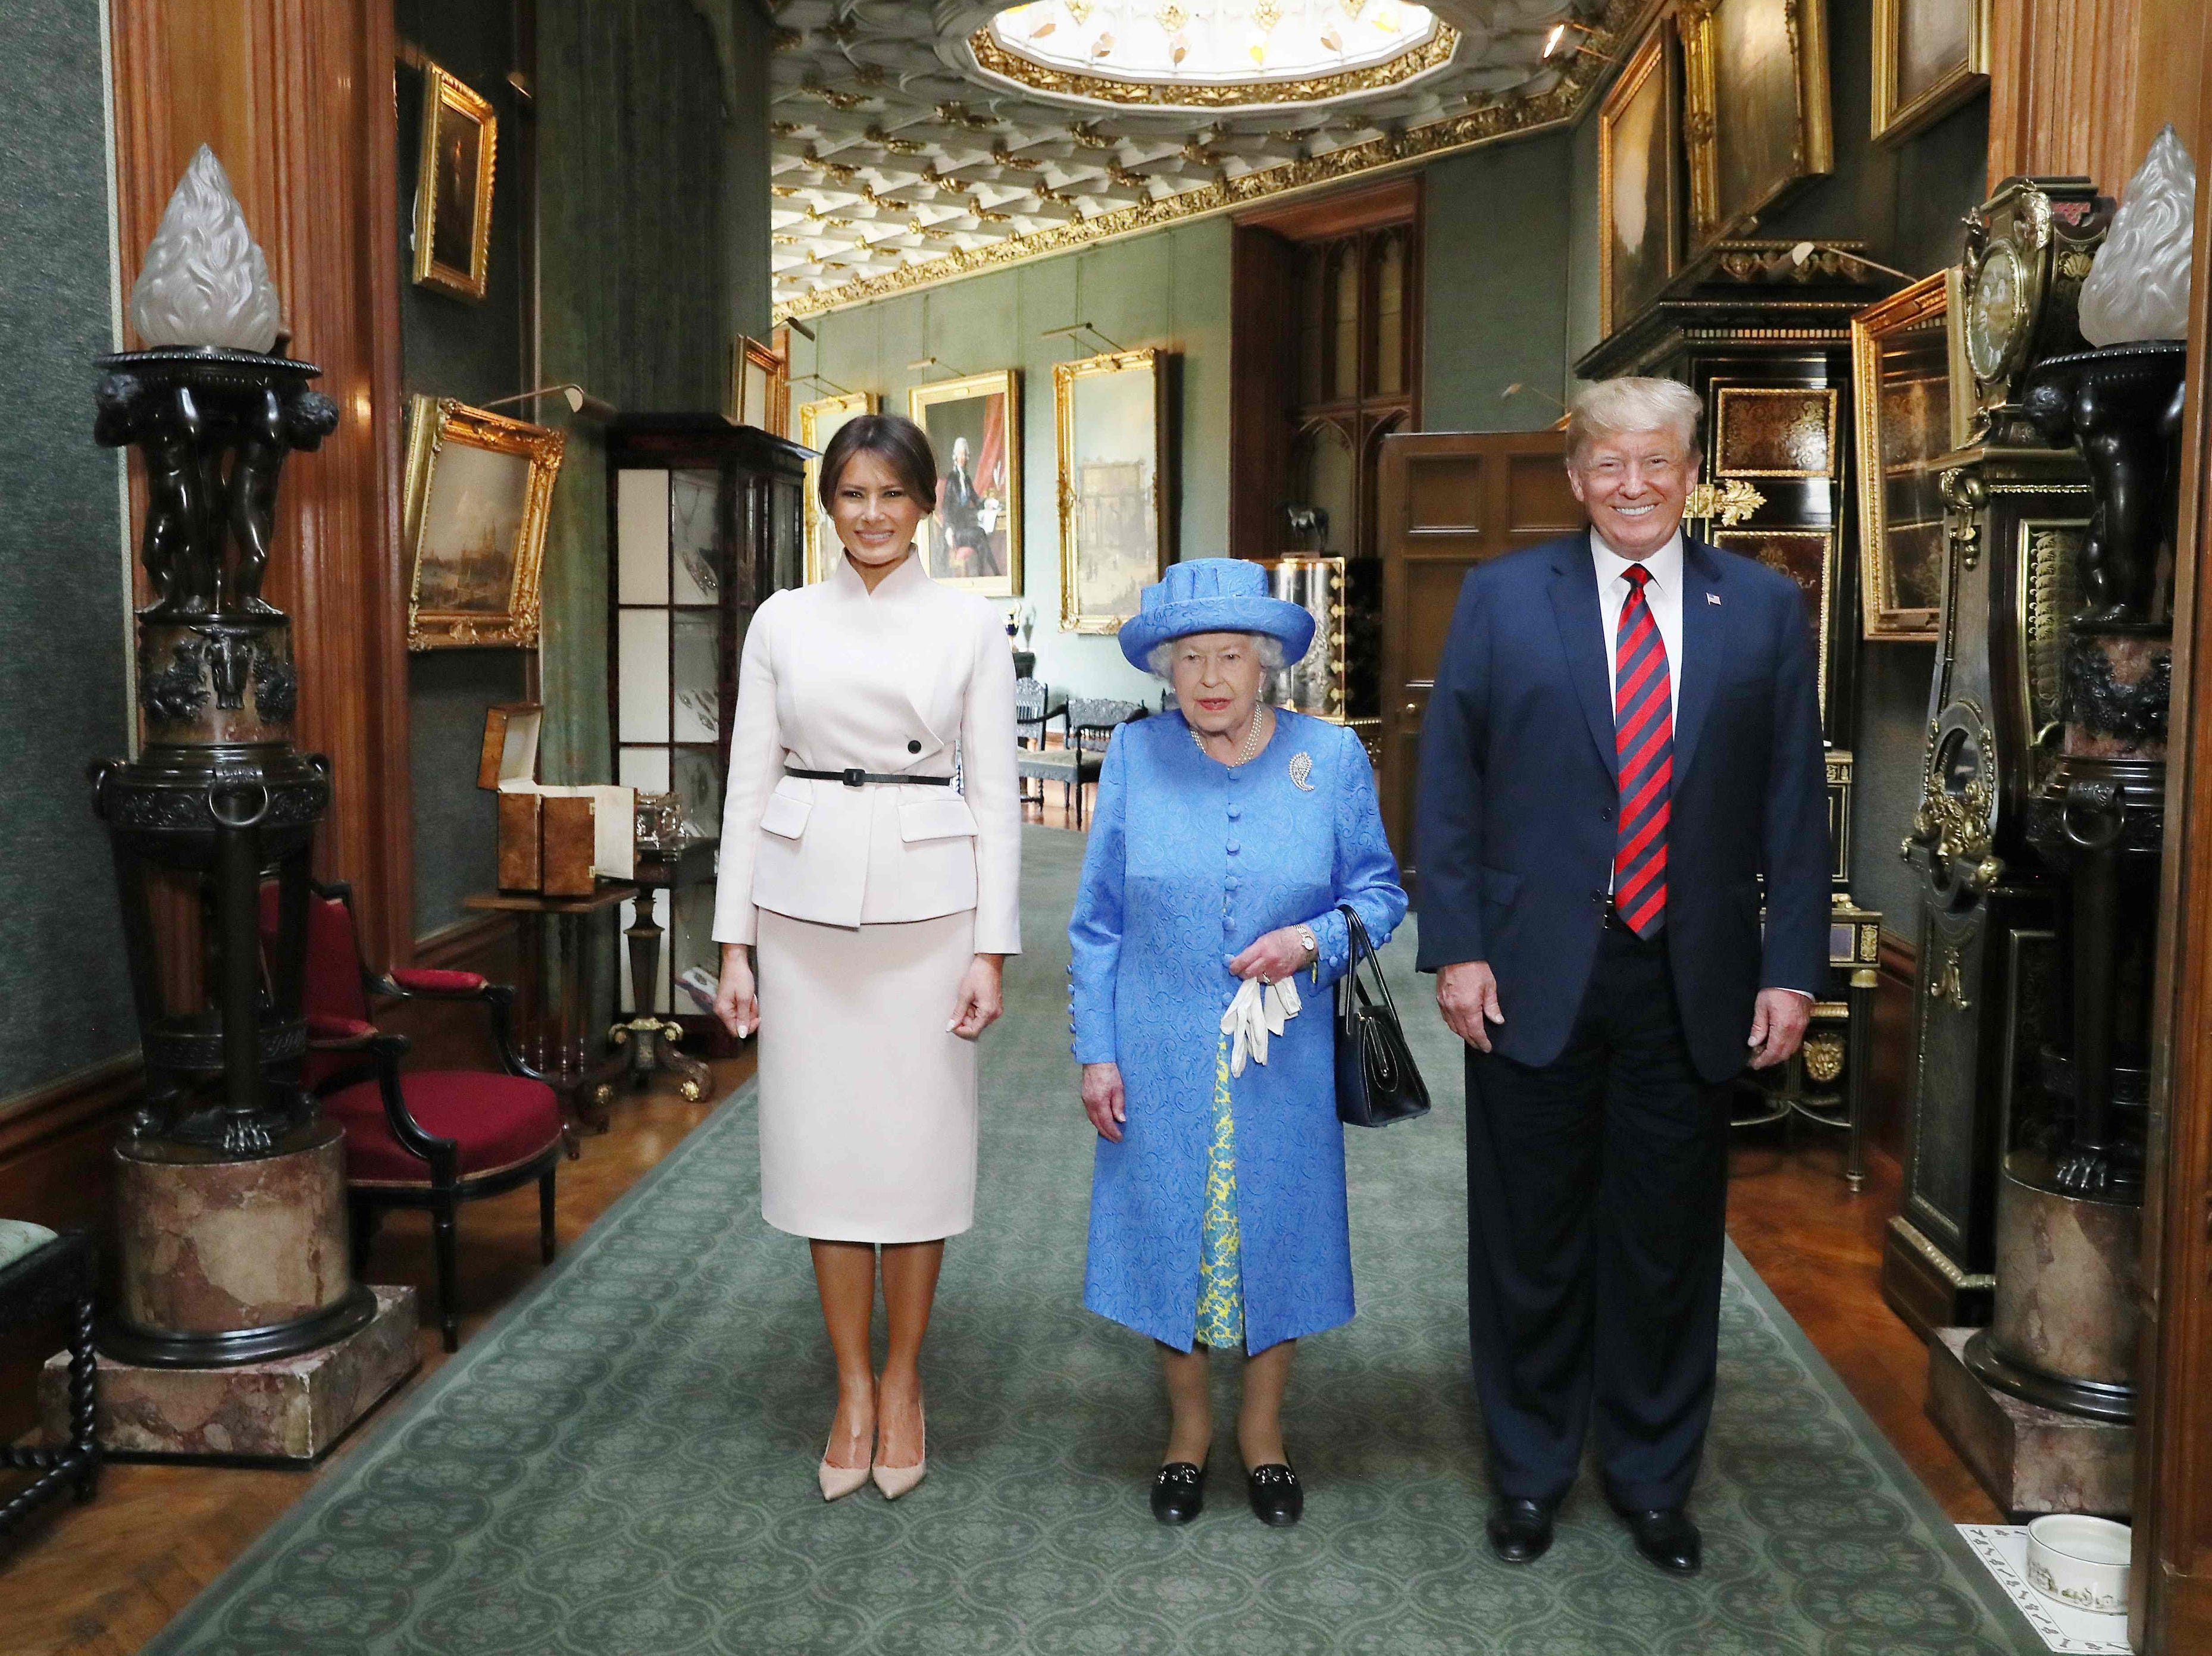 Britain's Queen Elizabeth II stands with President Trump and First Lady Melania Trump in the Grand Corridor at Windsor Castle in Windsor, west of London, on July 13, 2018.